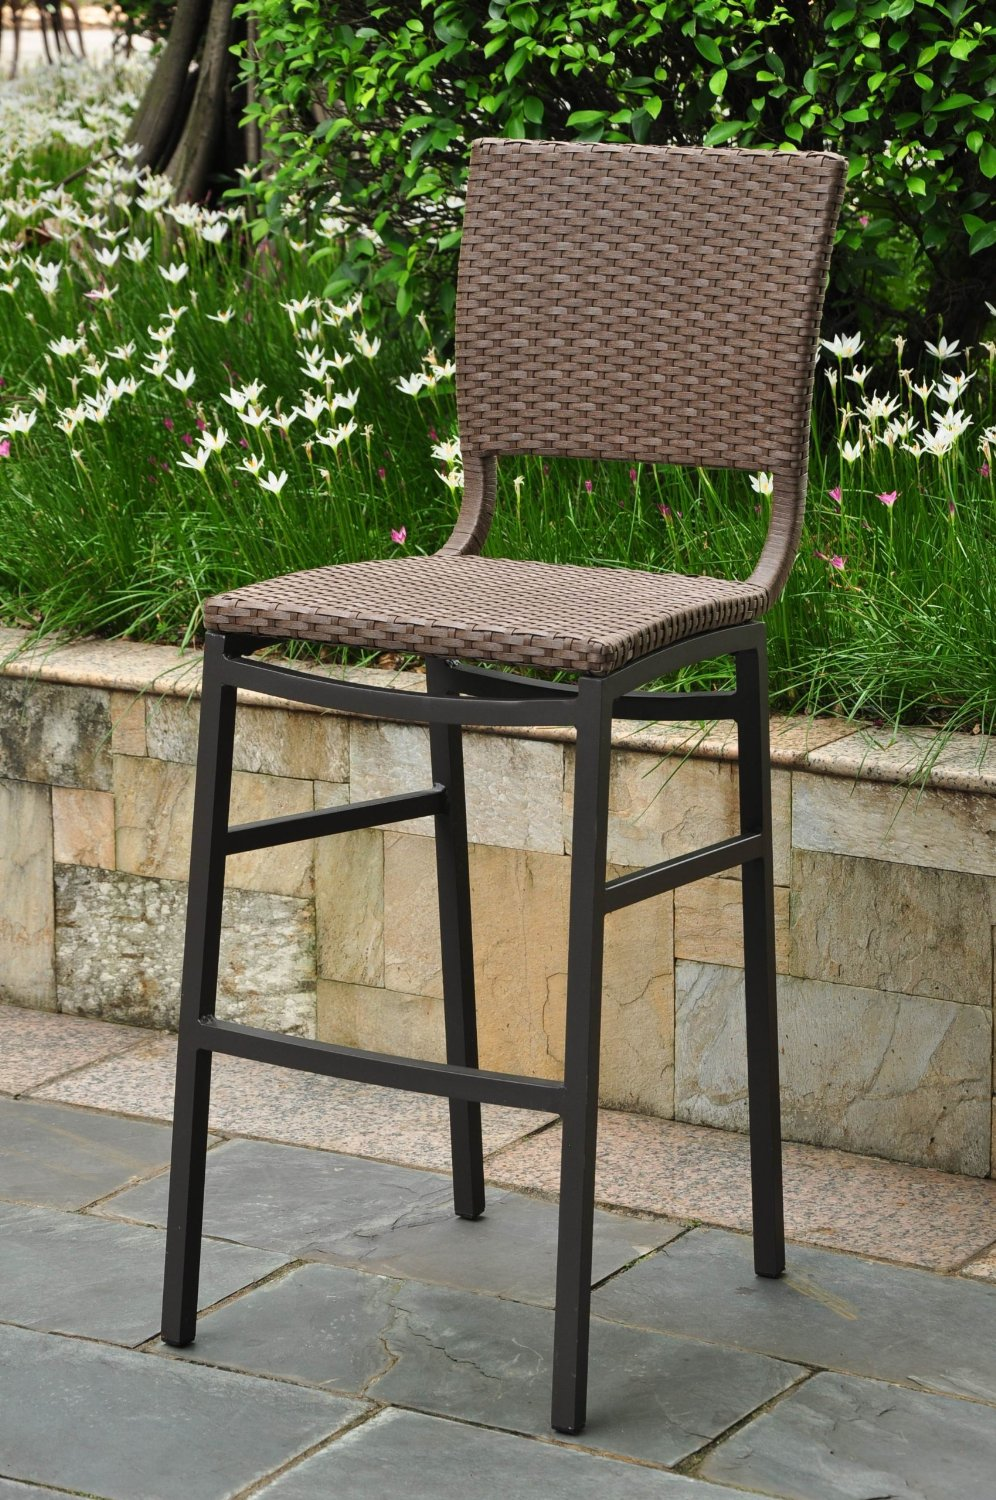 Barcelona Resin Wicker Outdoor Bar Height Chairs Stools